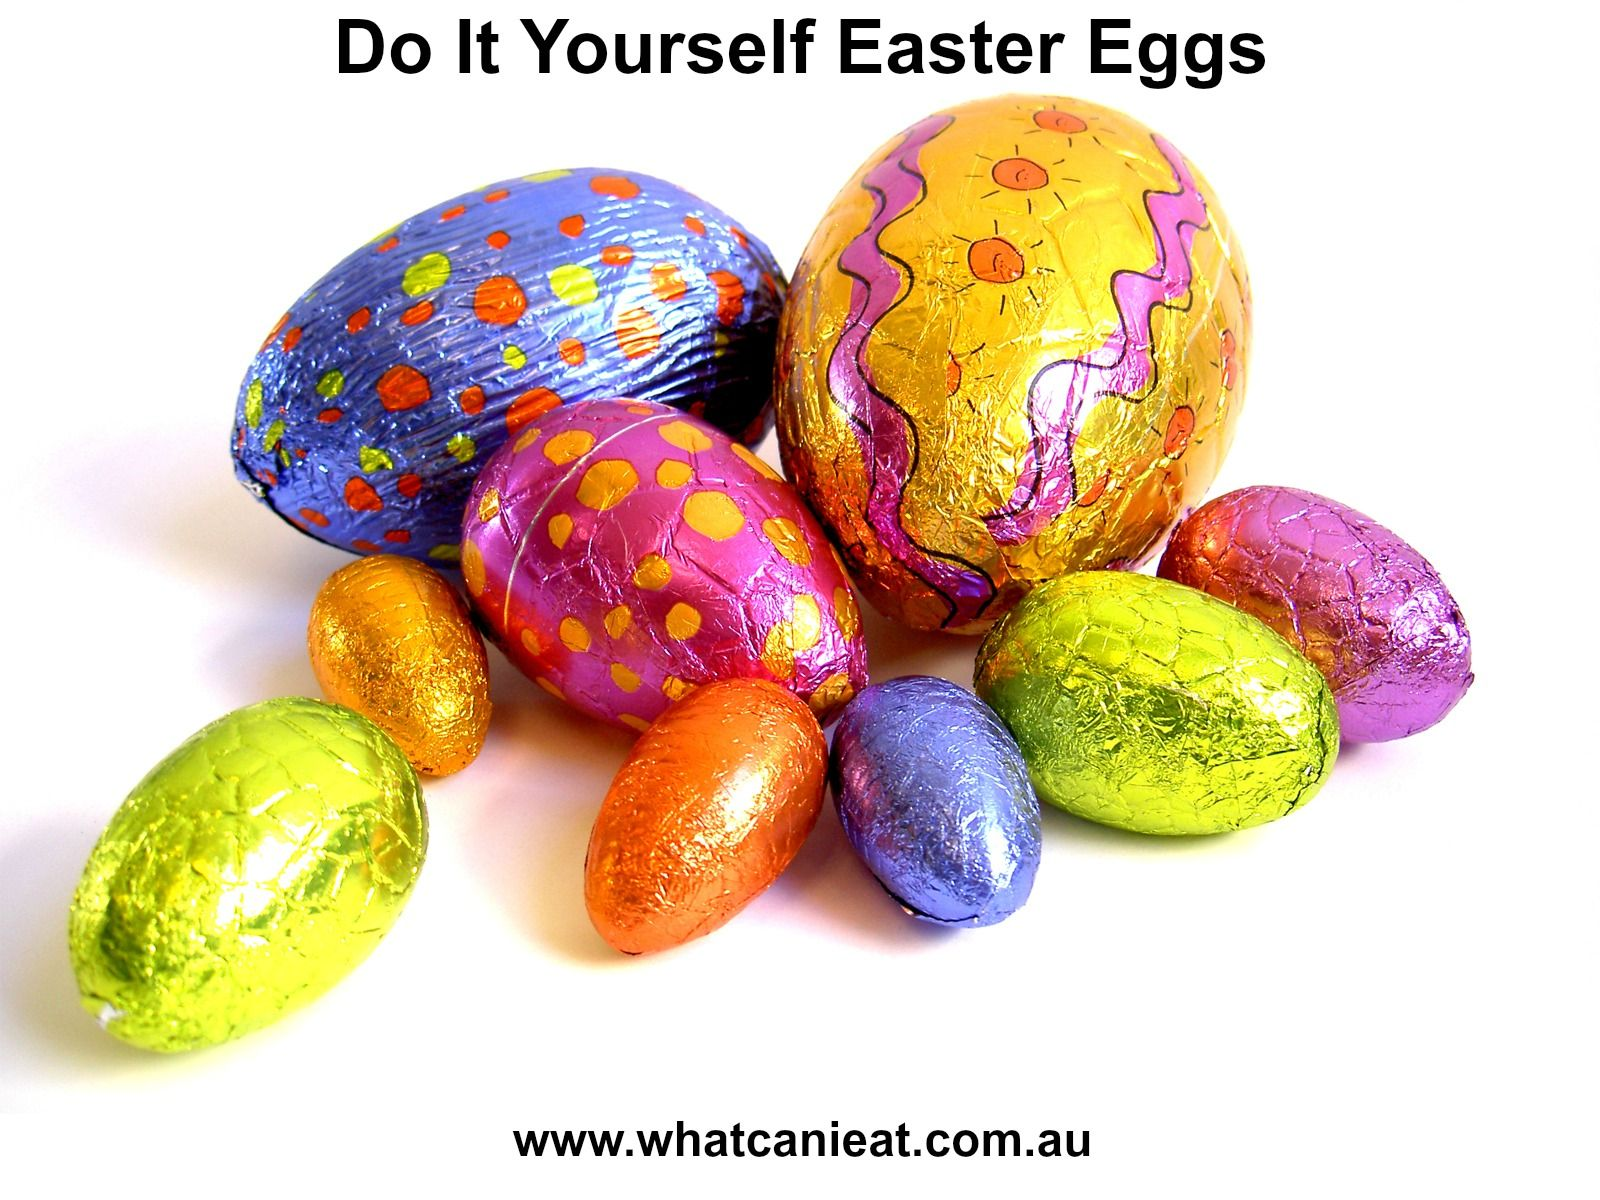 Do it yourself easter eggs that are dairy egg gluten nut soy and do it yourself easter eggs that are dairy egg gluten nut soy solutioingenieria Choice Image